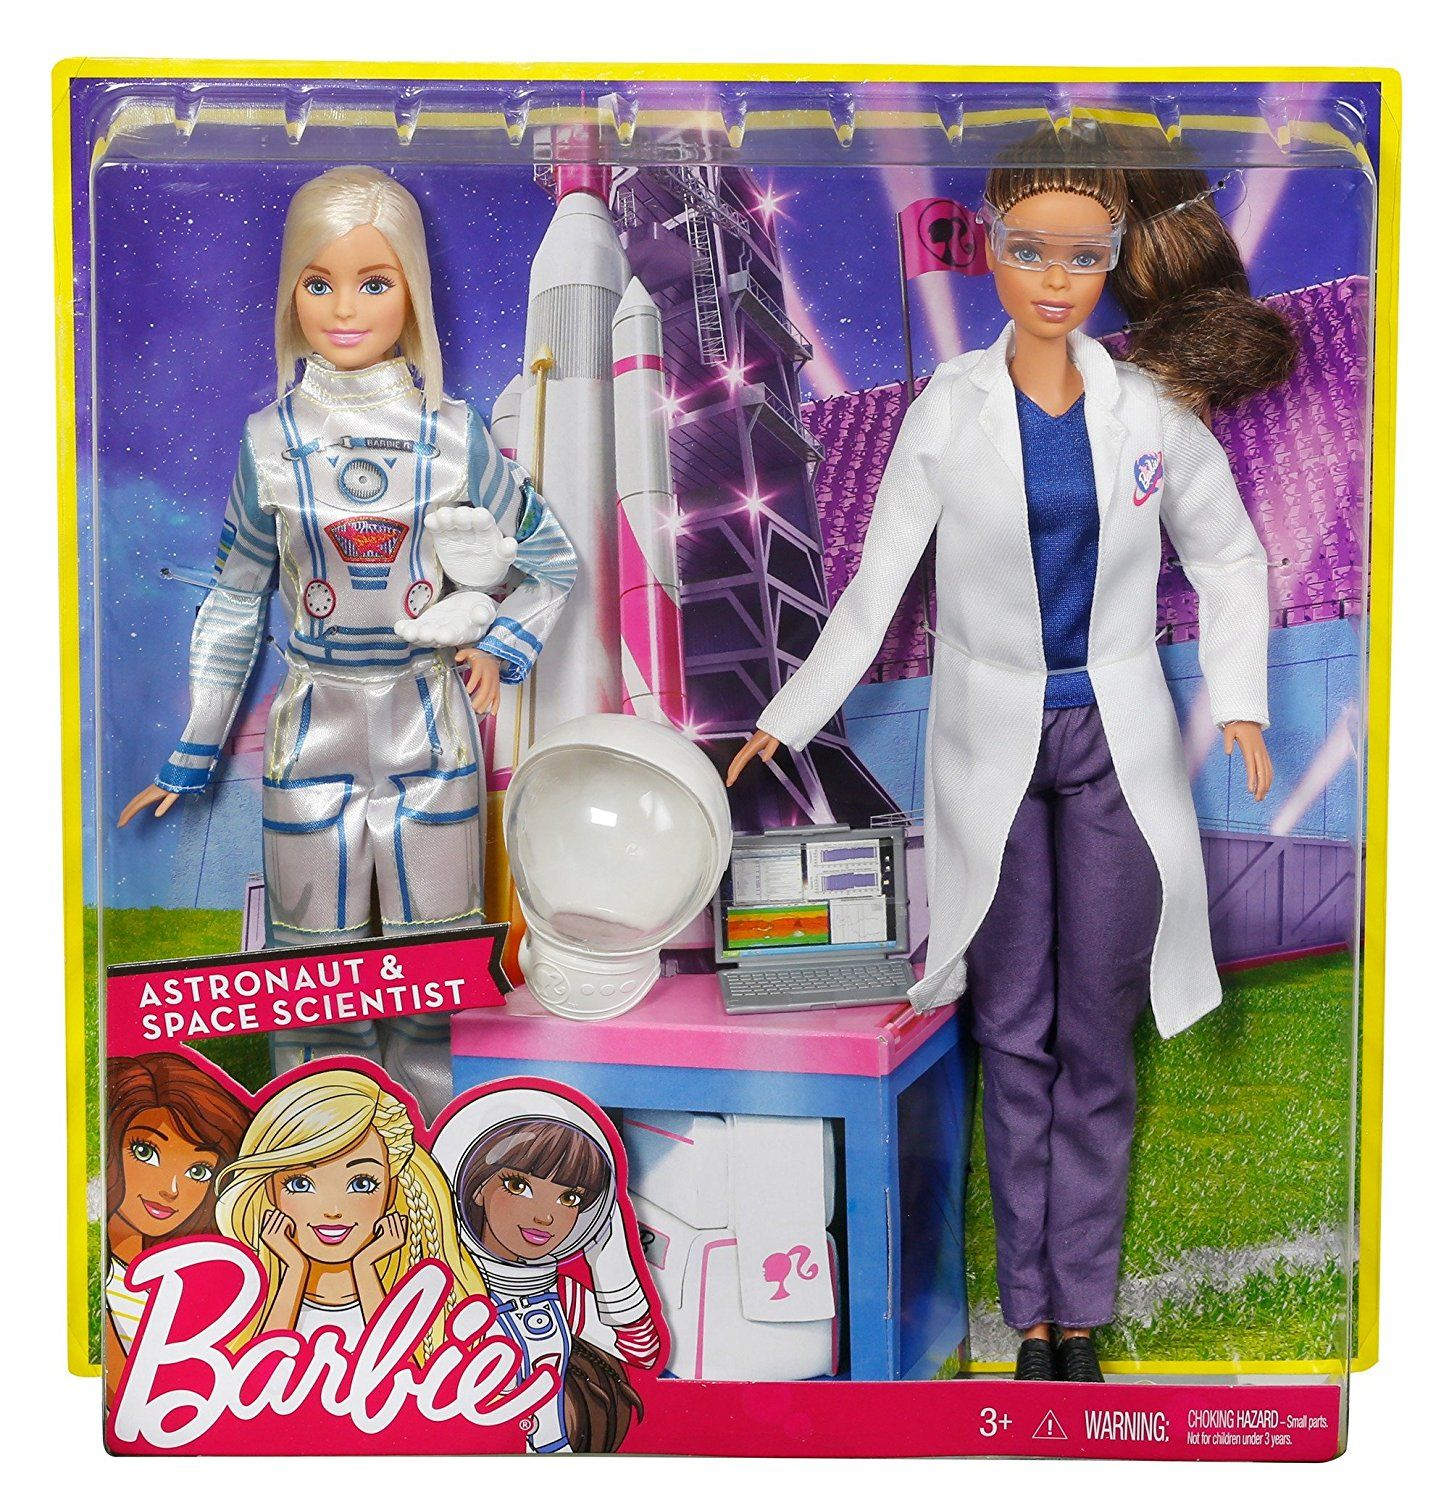 Barbie deluxe furniture stovetop to tabletop kitchen doll target - Barbie Careers Astronaut And Space Scientist Doll